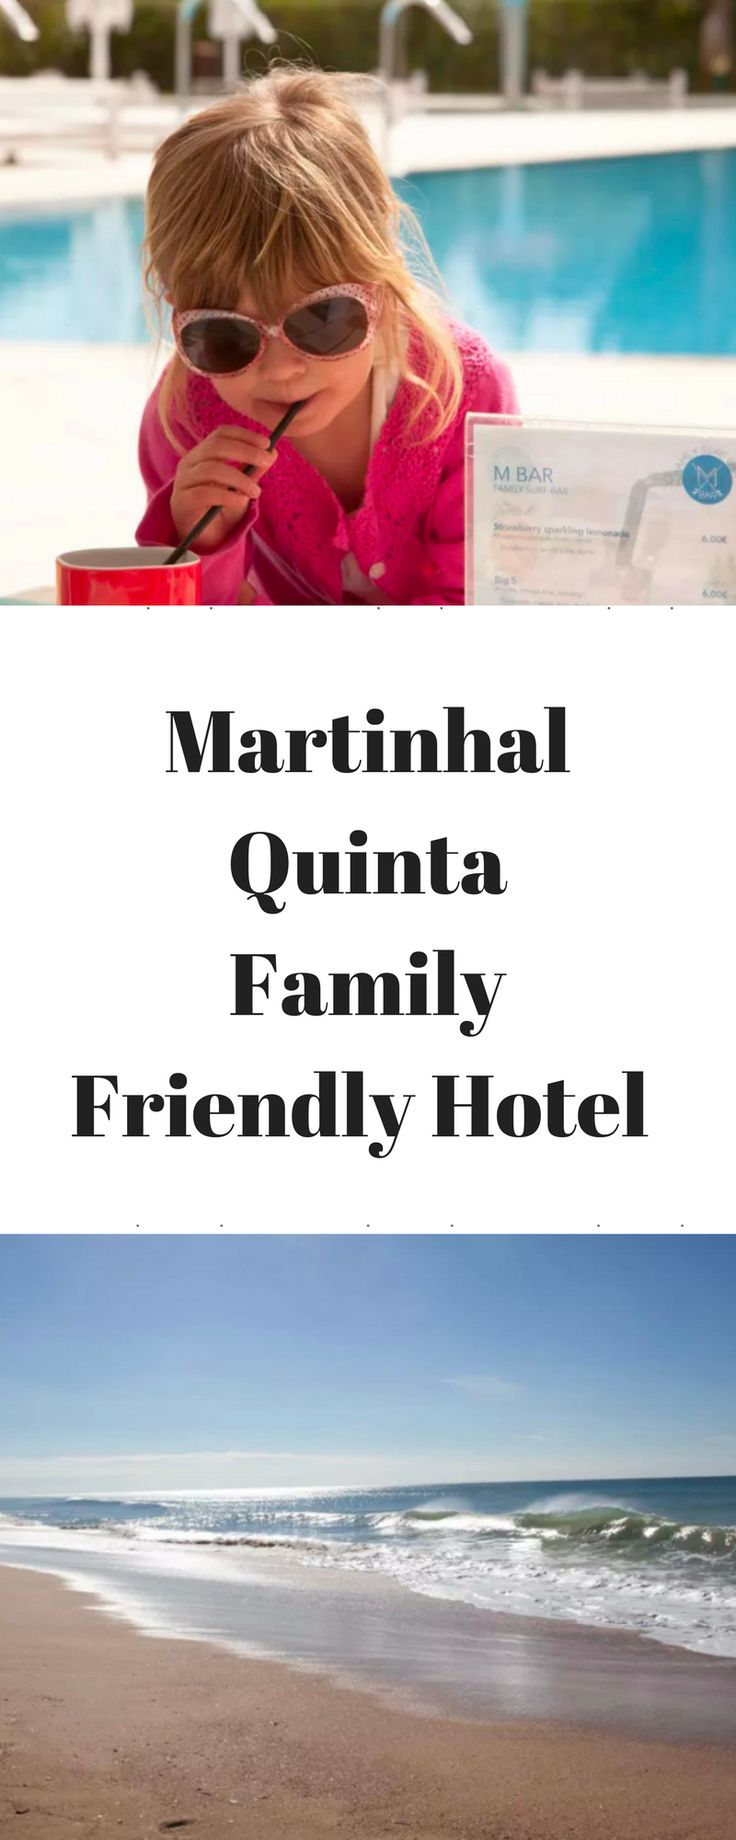 Review Martinhal Quinta Portugal www.minitravellers.co.uk Martinhal Quinta is a beautiful 4 star villa resort in a stunning part of the Algarve.  The owners of Martinhal clearly have a vision for the recent acquisition to their portfolio and having spent time at both Quinta and Sagres (the original) this half term with my three Mini Travellers I can see quite clearly how exceptional Quinta will become.